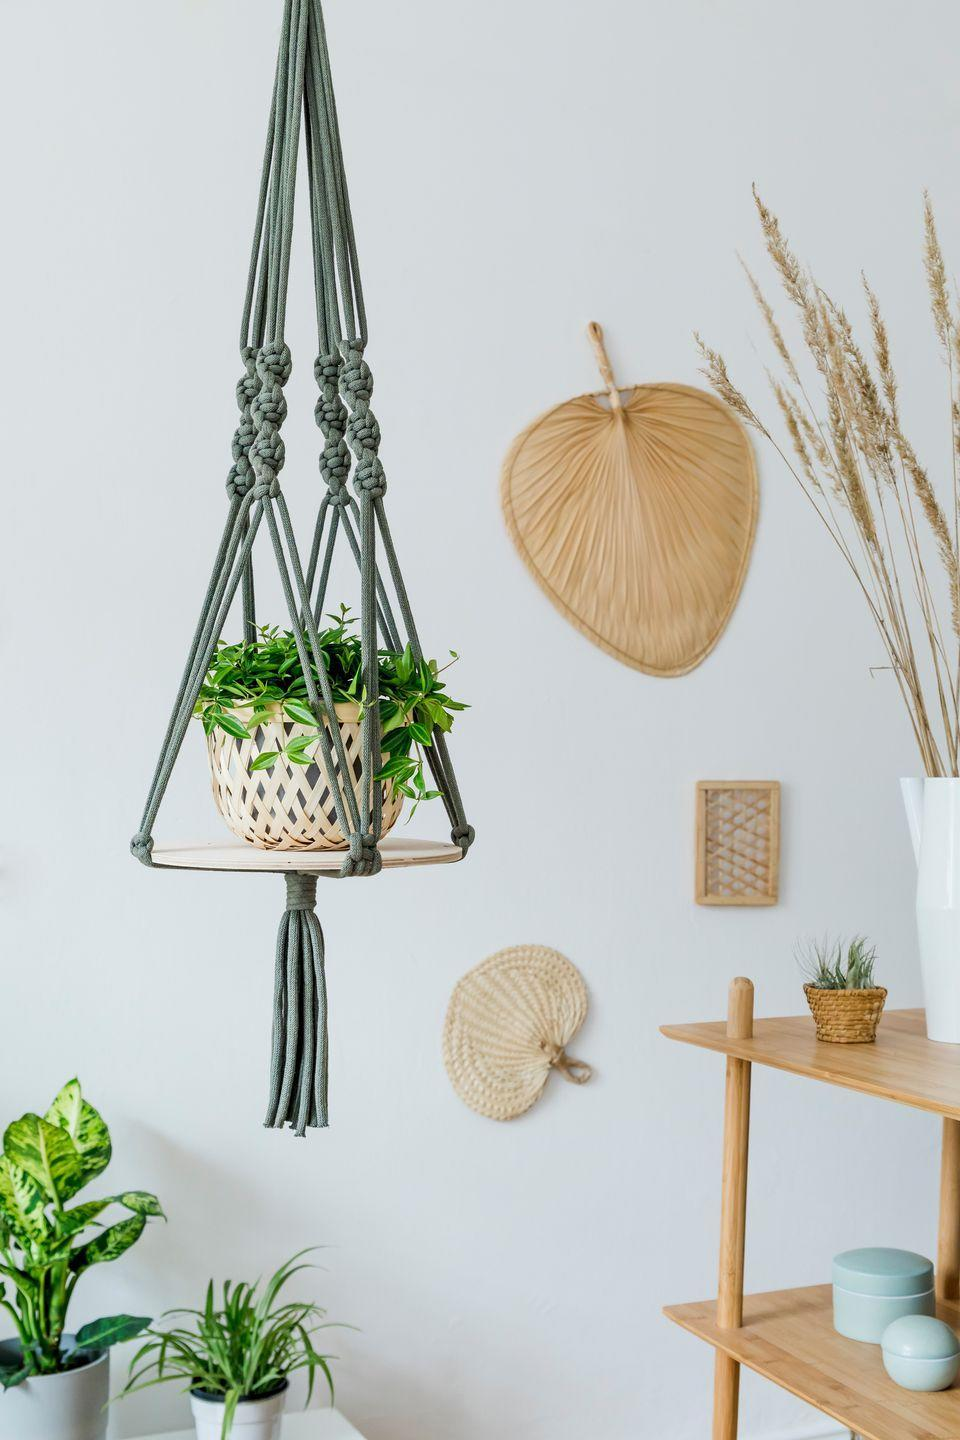 <p>Macramé, created by tying cords into knots, was all the rage in 70s homes, used for everything from potted-plant holders to decorative wall hangings in the shape of owls. </p>